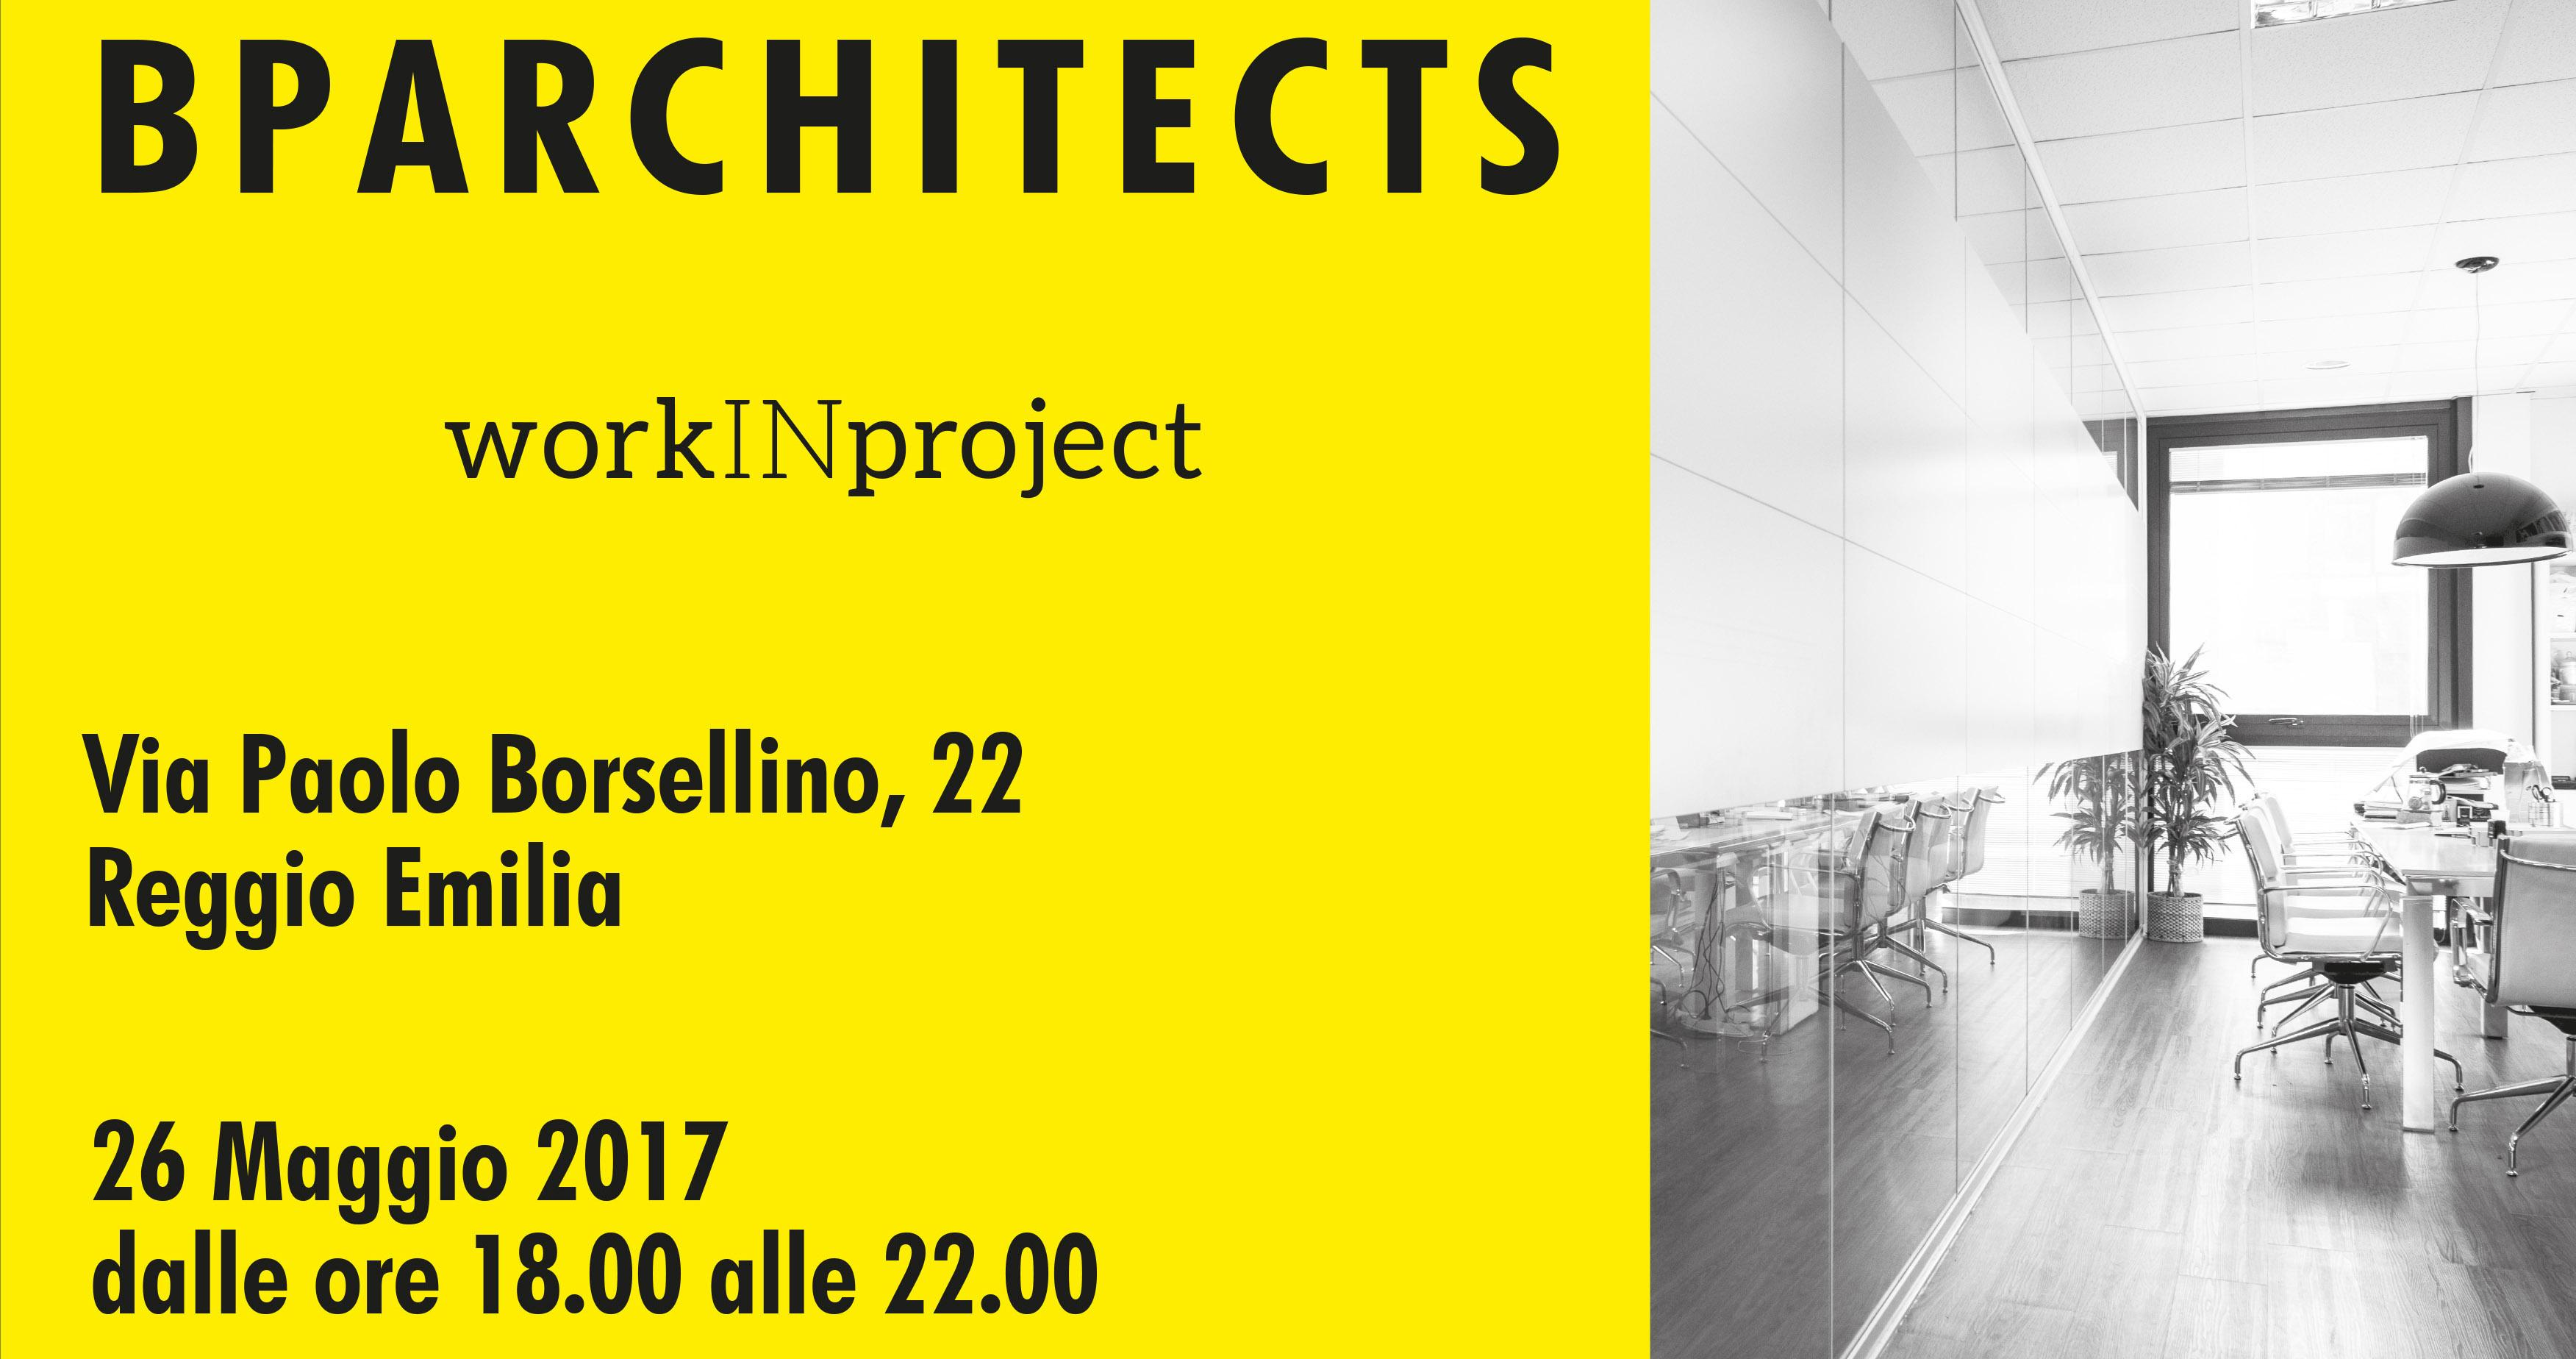 BPARCHITECTS - workINproject